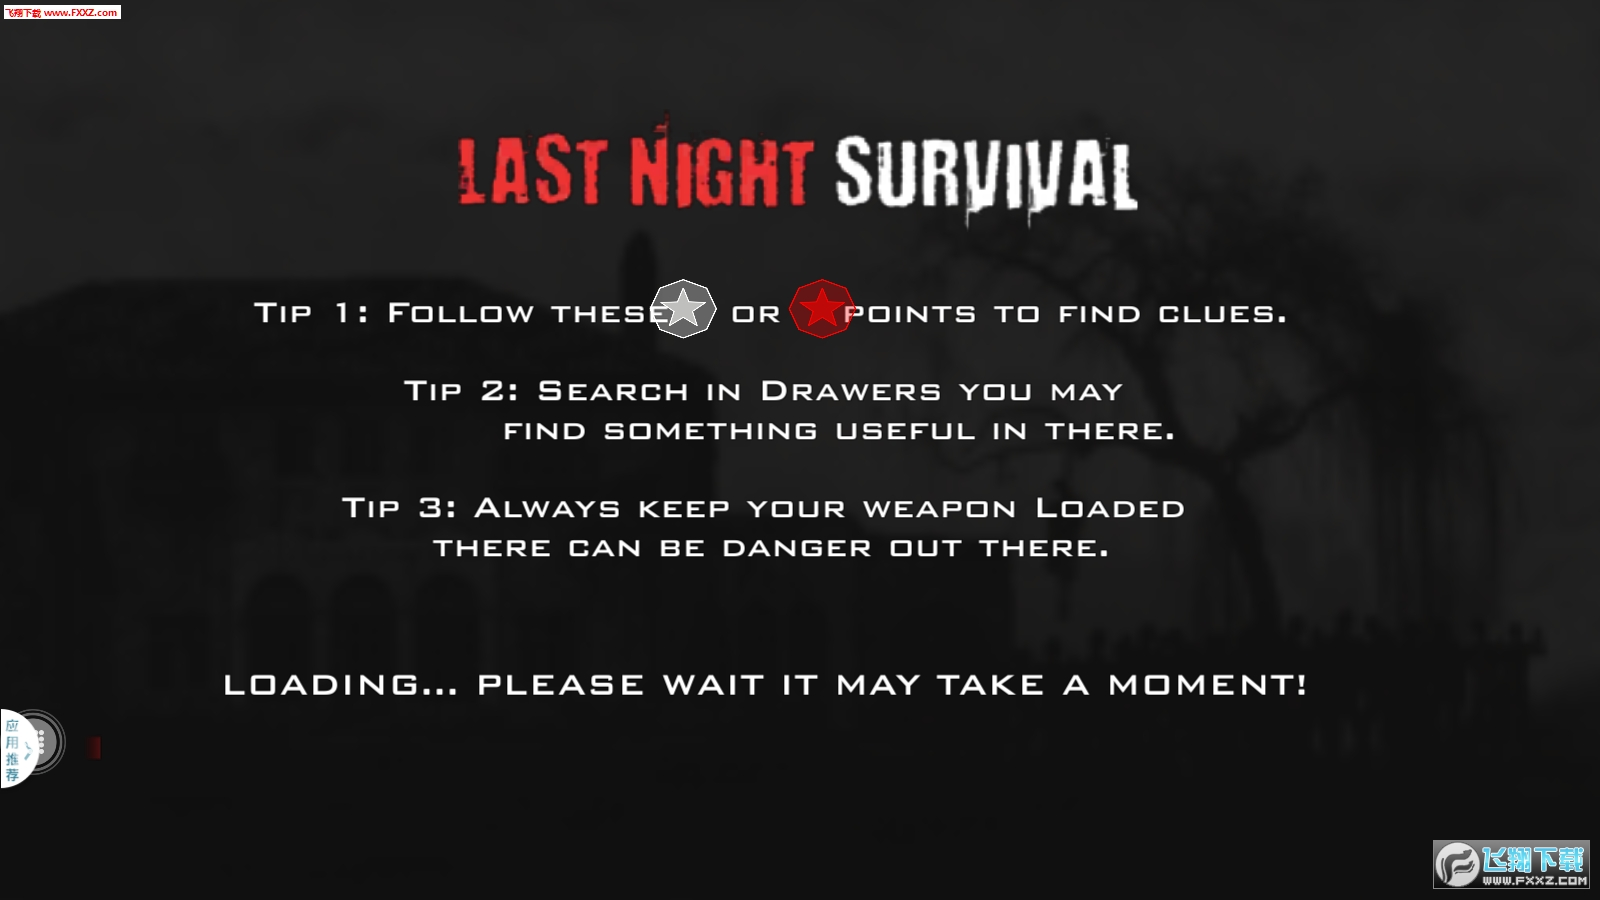 LAST NIGHT SURVIVAL手游截图1